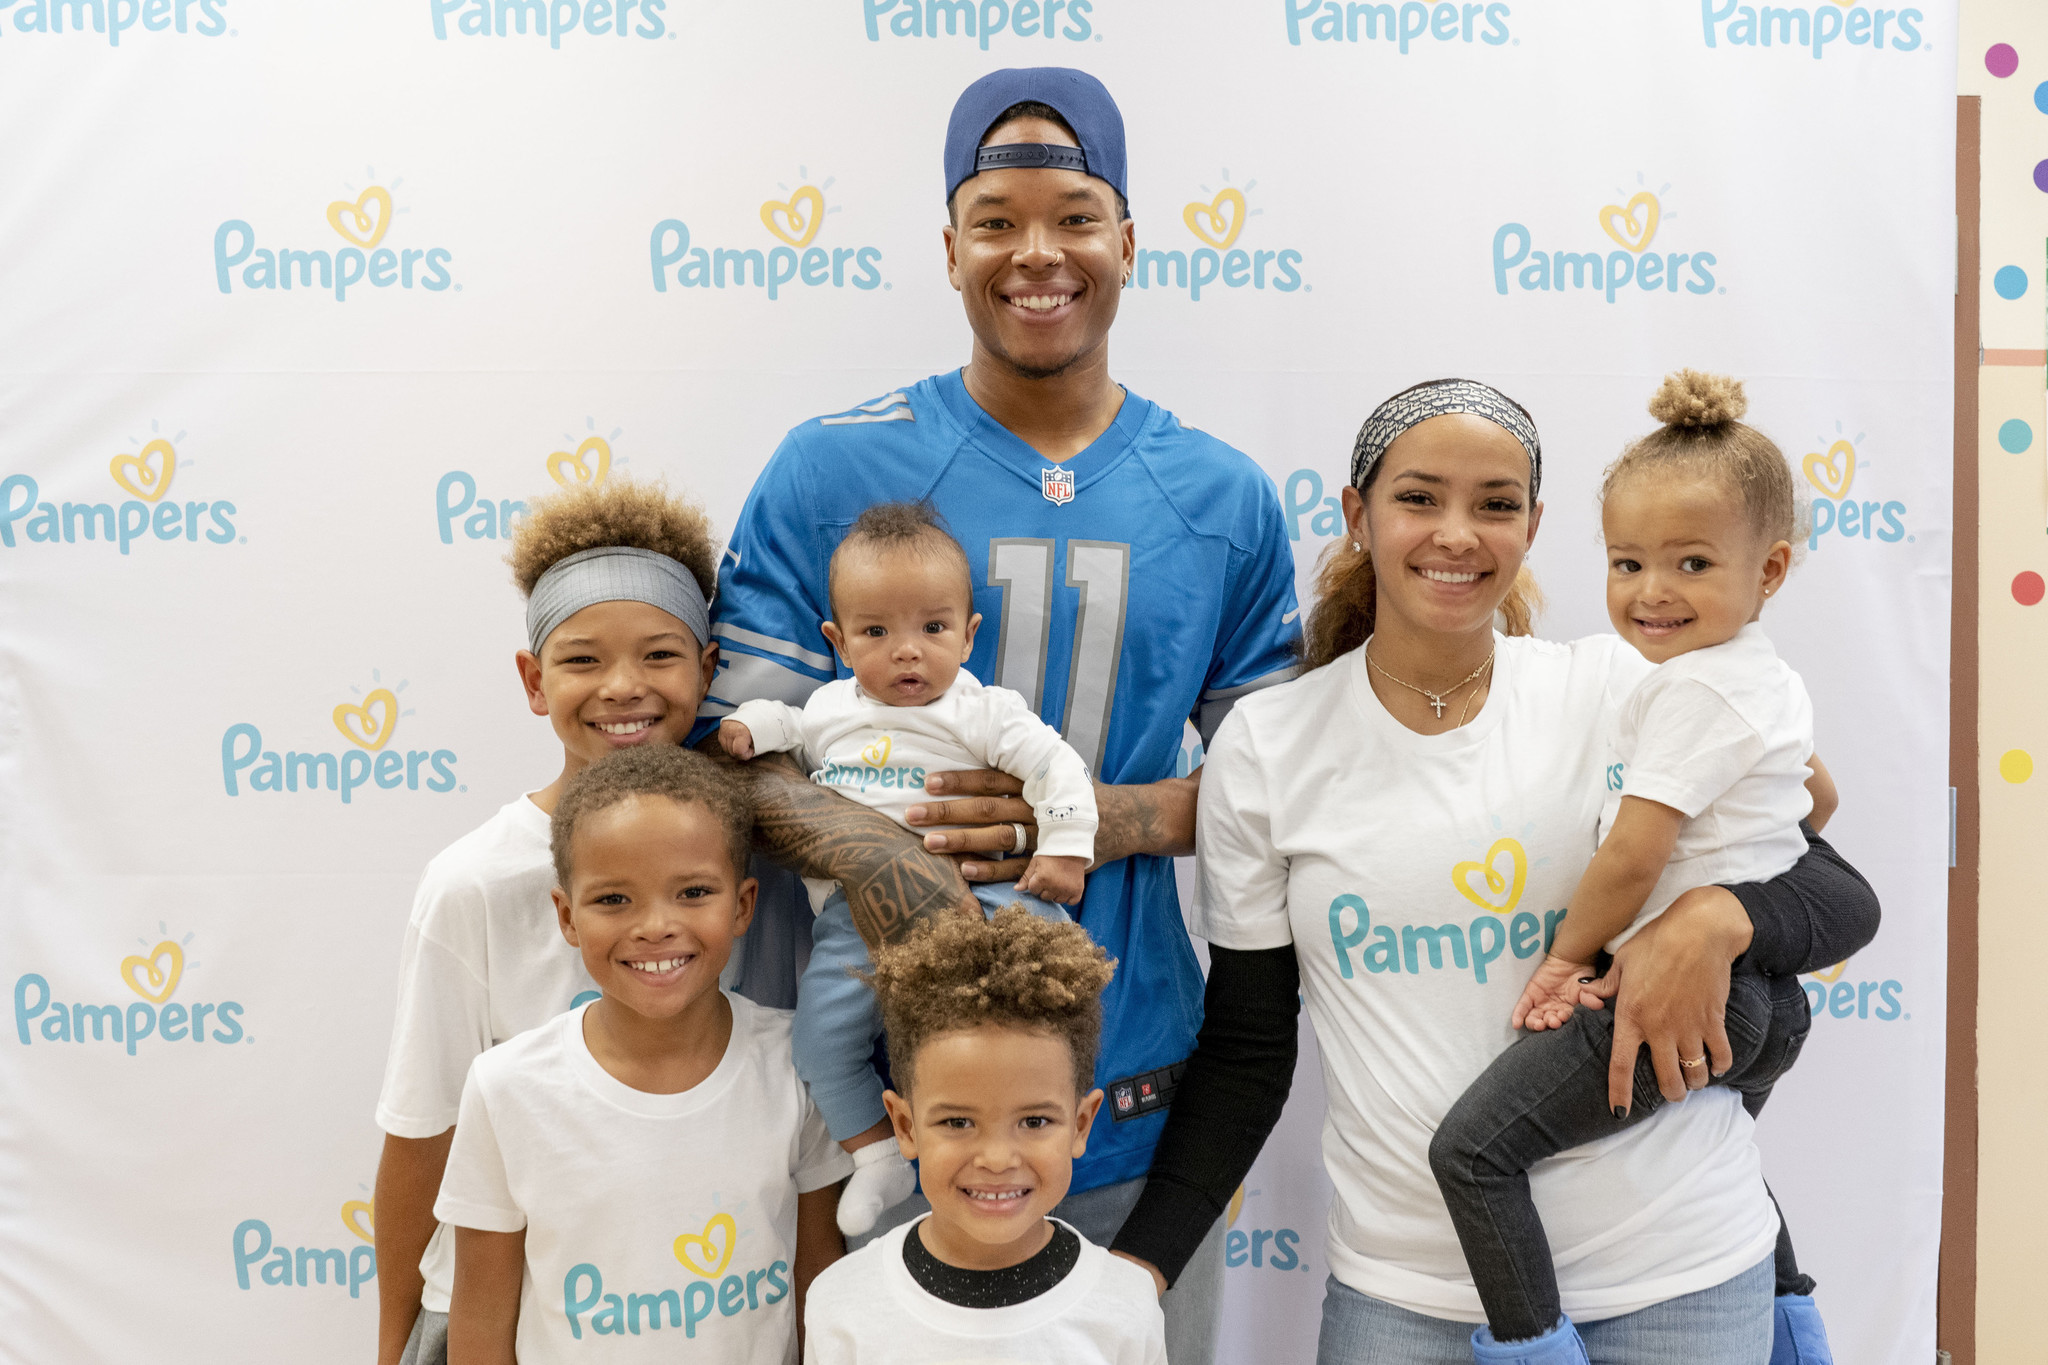 Detroit Lions WR Marvin Jones' 6-month-old son dies — 'You have gained your wings'